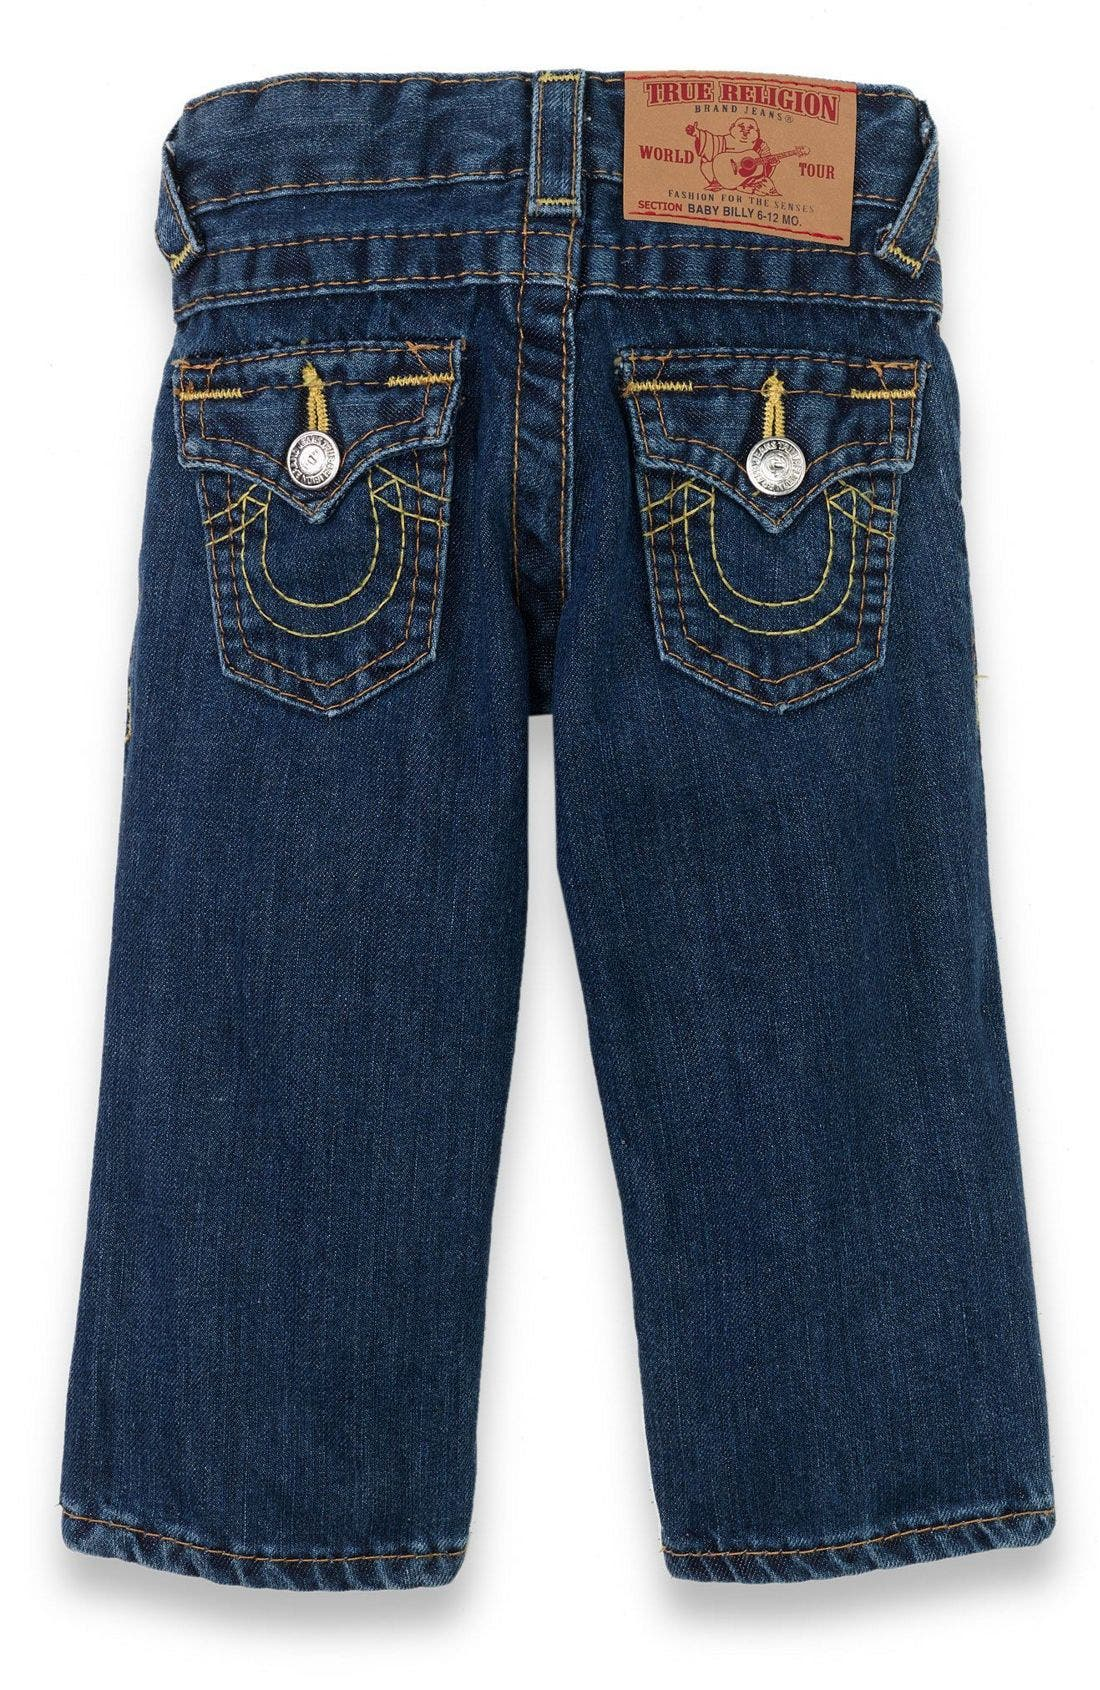 Alternate Image 1 Selected - True Religion Brand Jeans 'Baby Billy' Jeans (Infant)